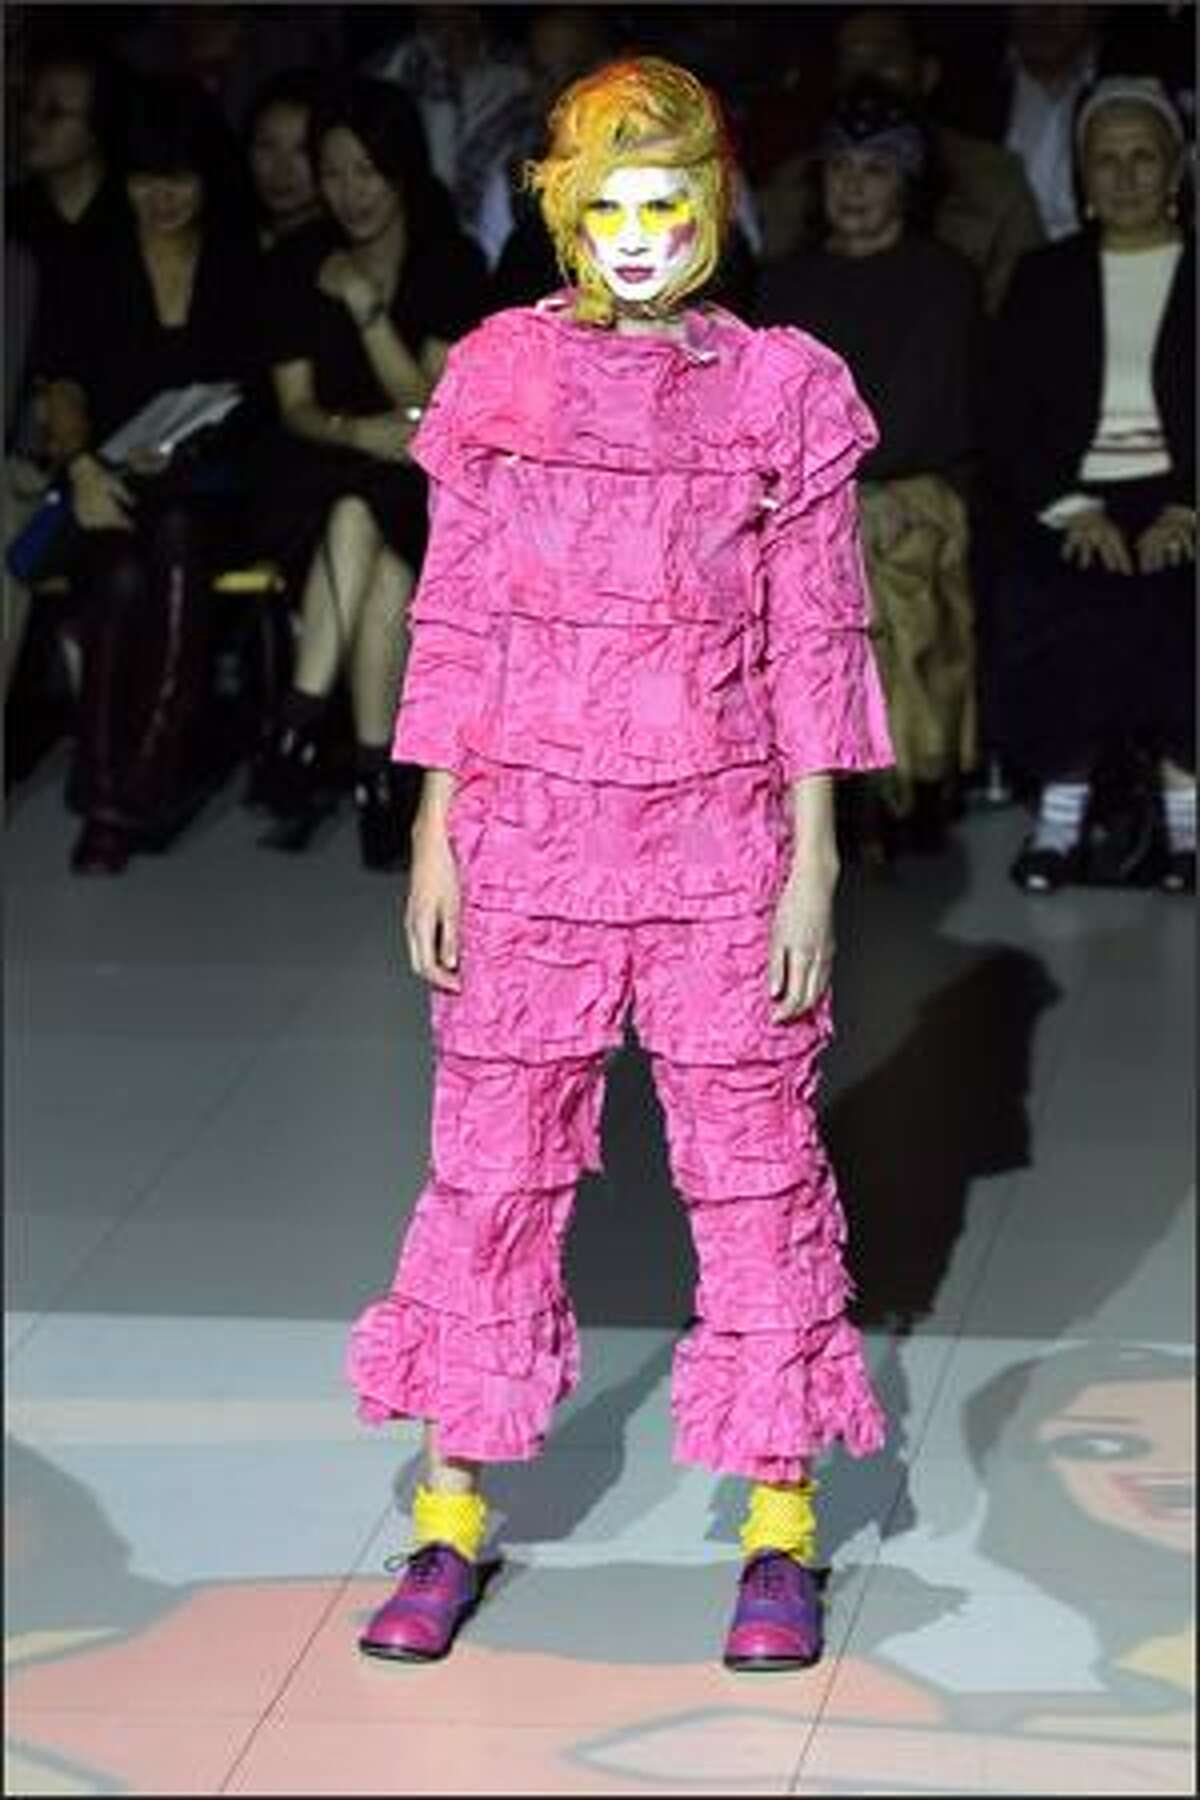 A model presents a creation by Comme des Garcons during the Spring/Summer 2008 ready-to-wear collection show in Paris.